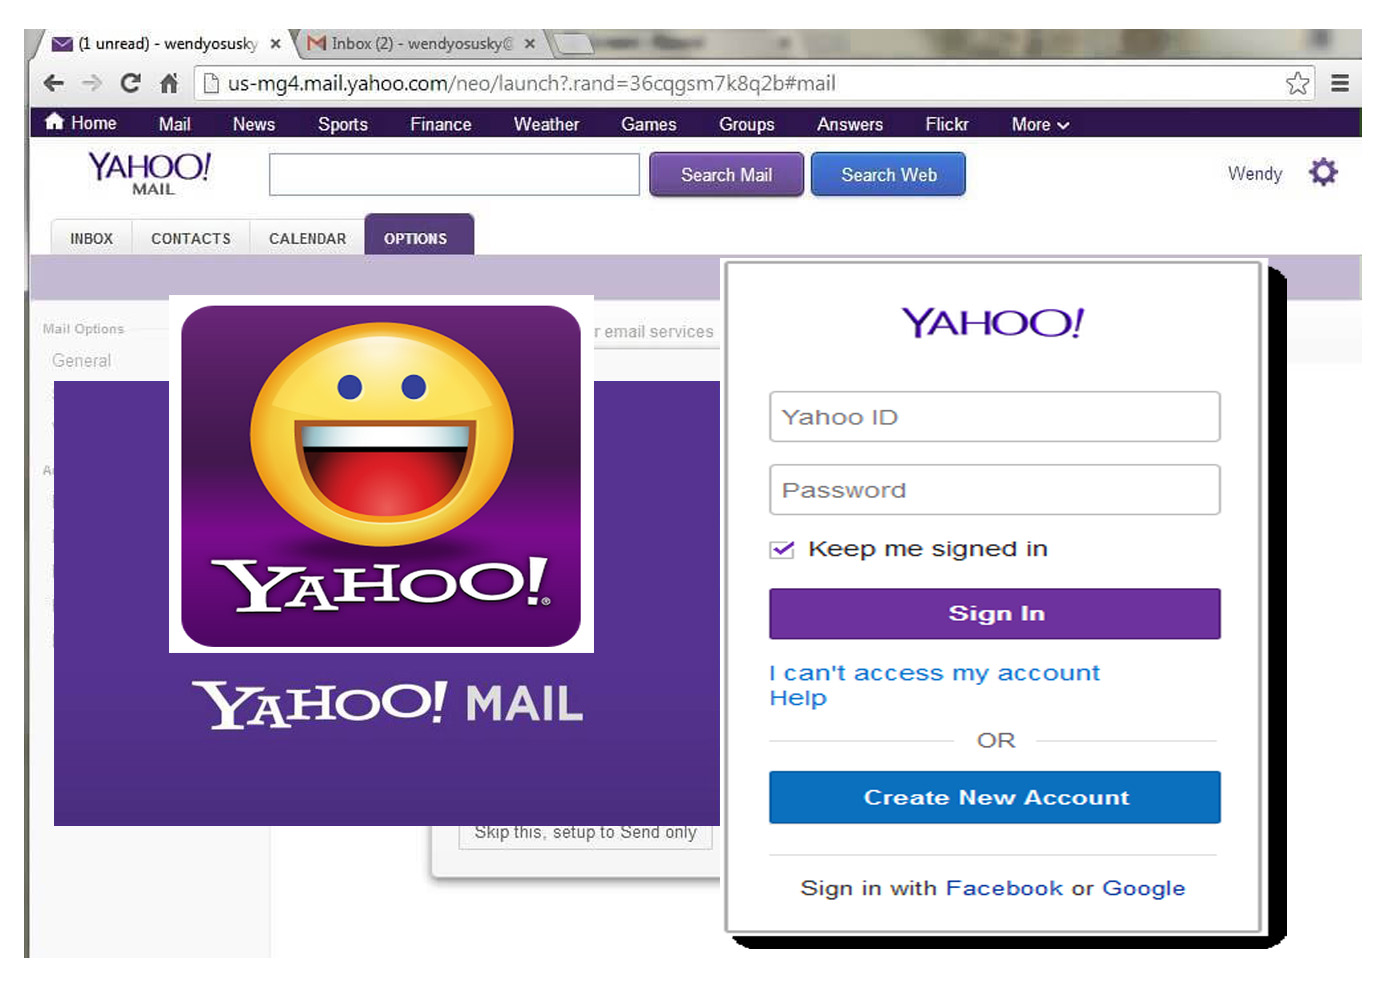 Yahoo Mail Login Page - Sign in to Your Yahoo Account